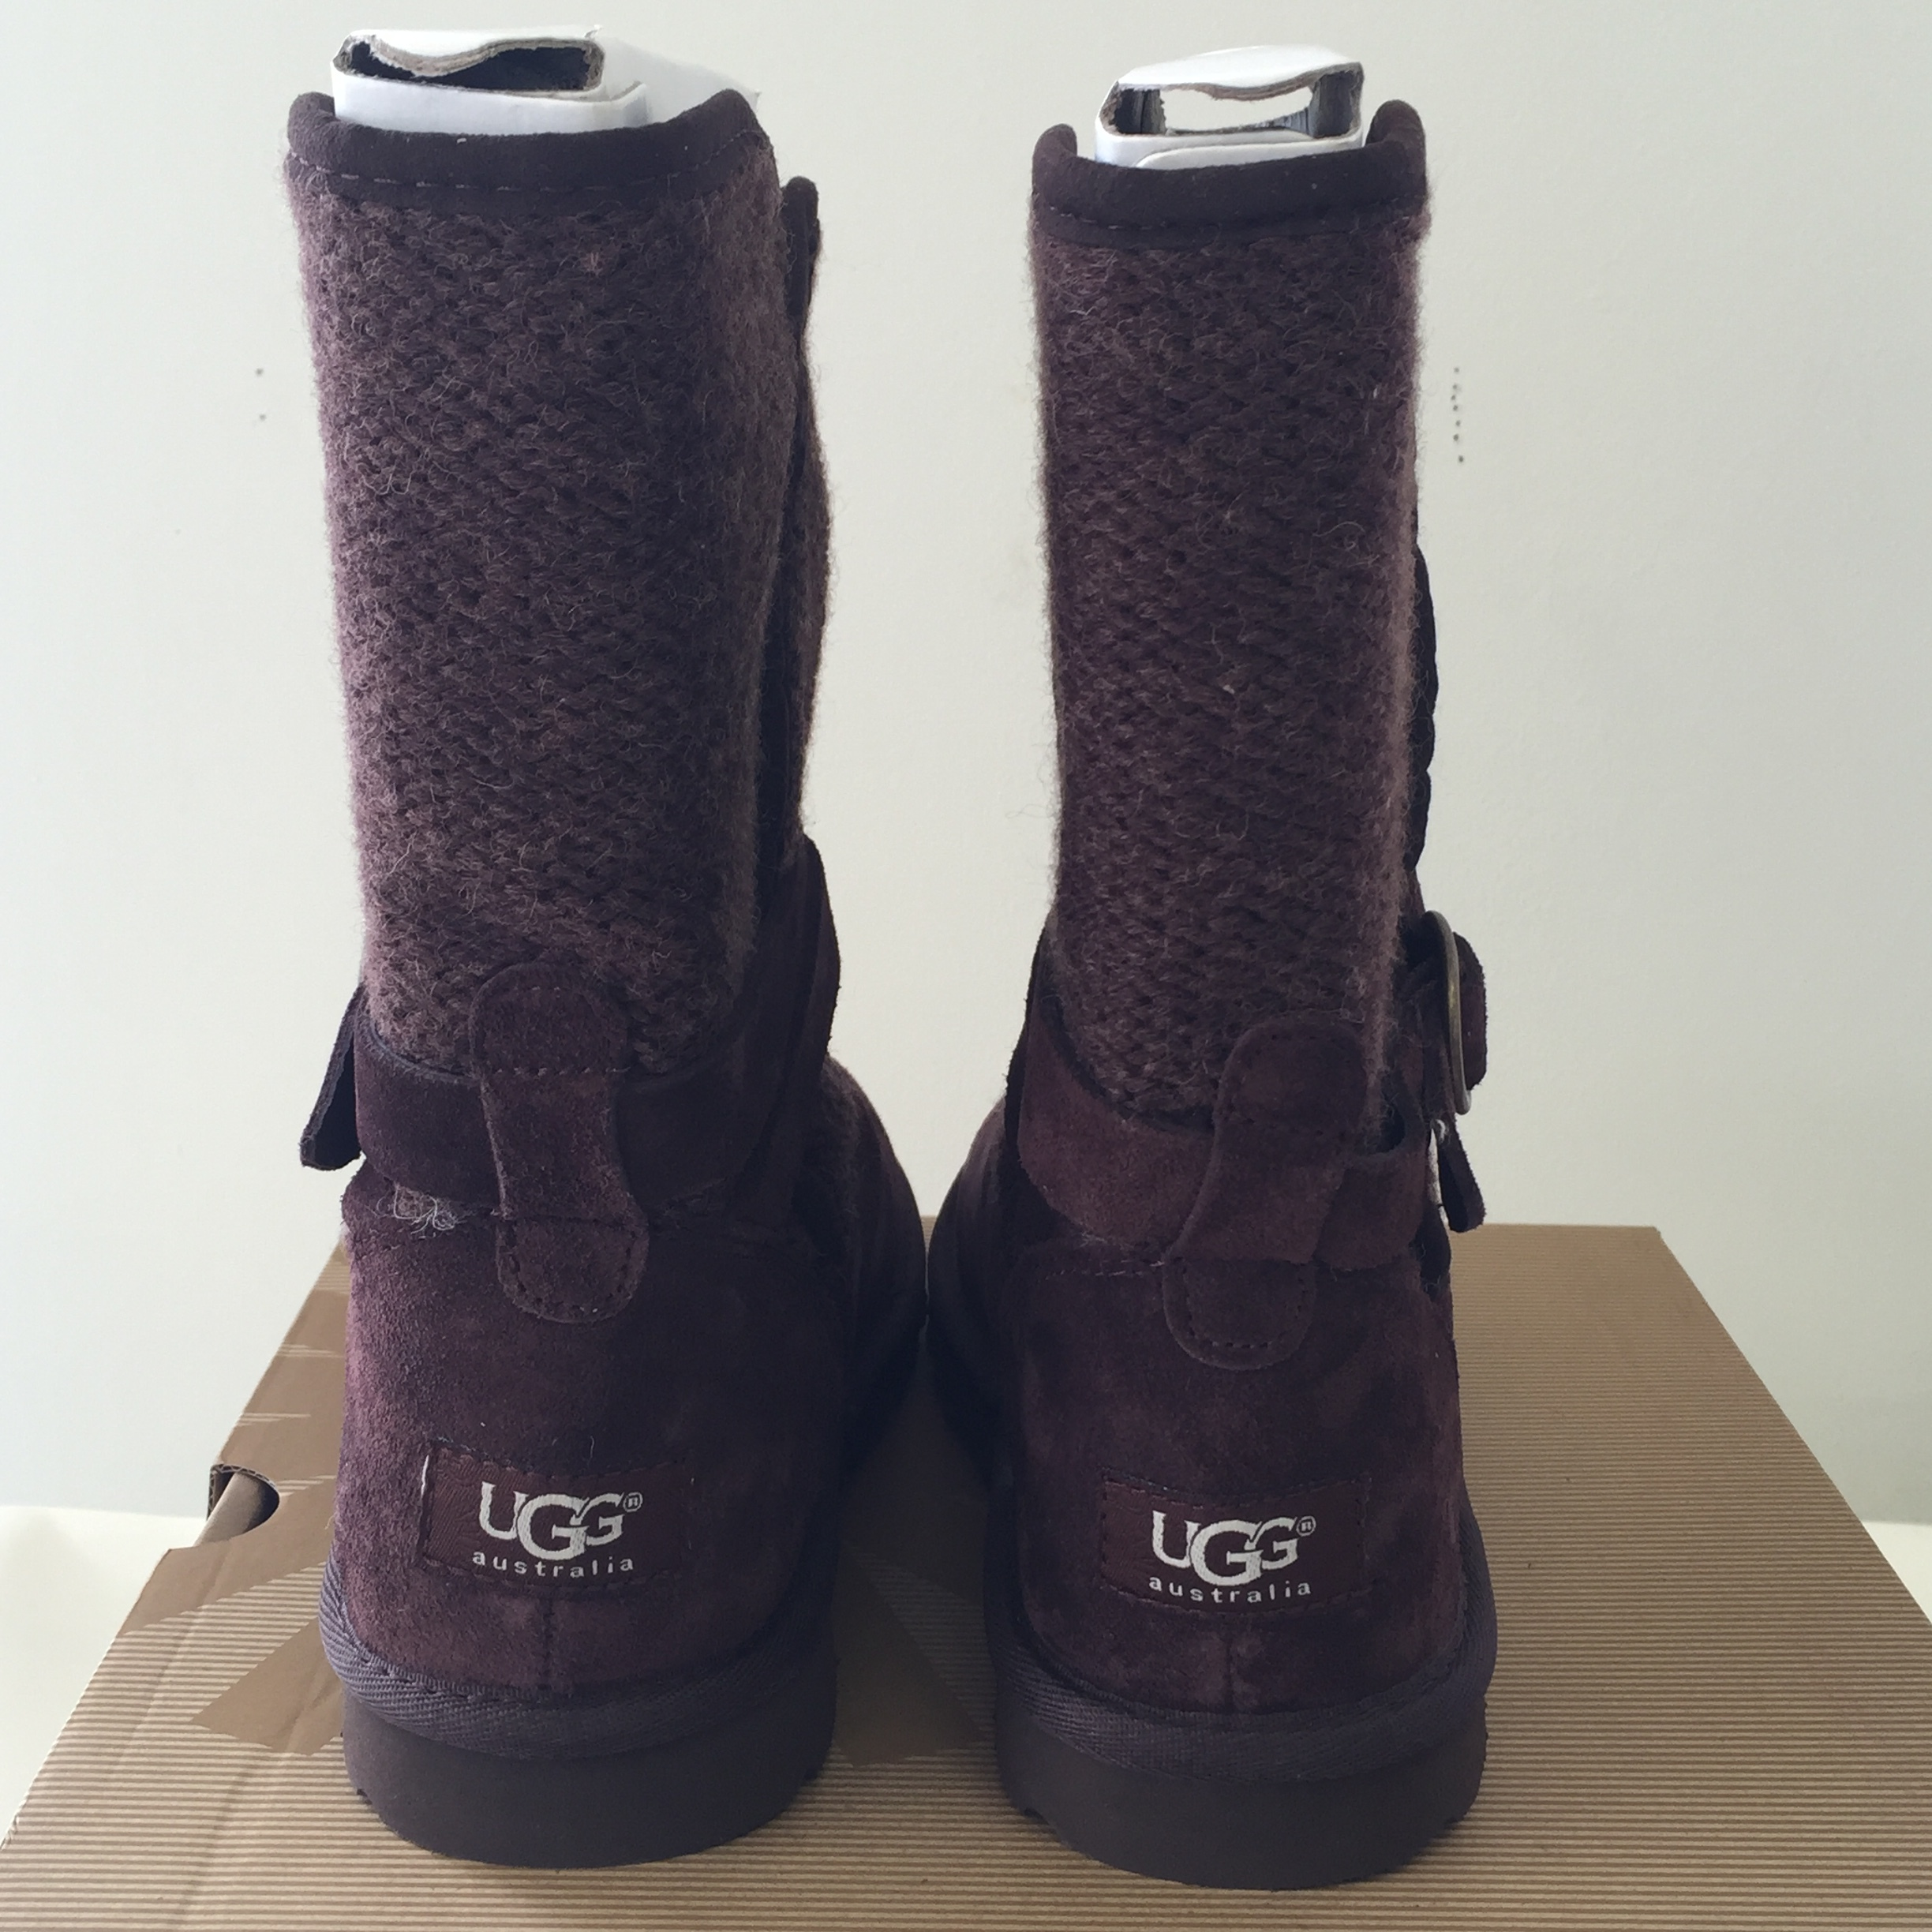 UGG bottes sortie new york